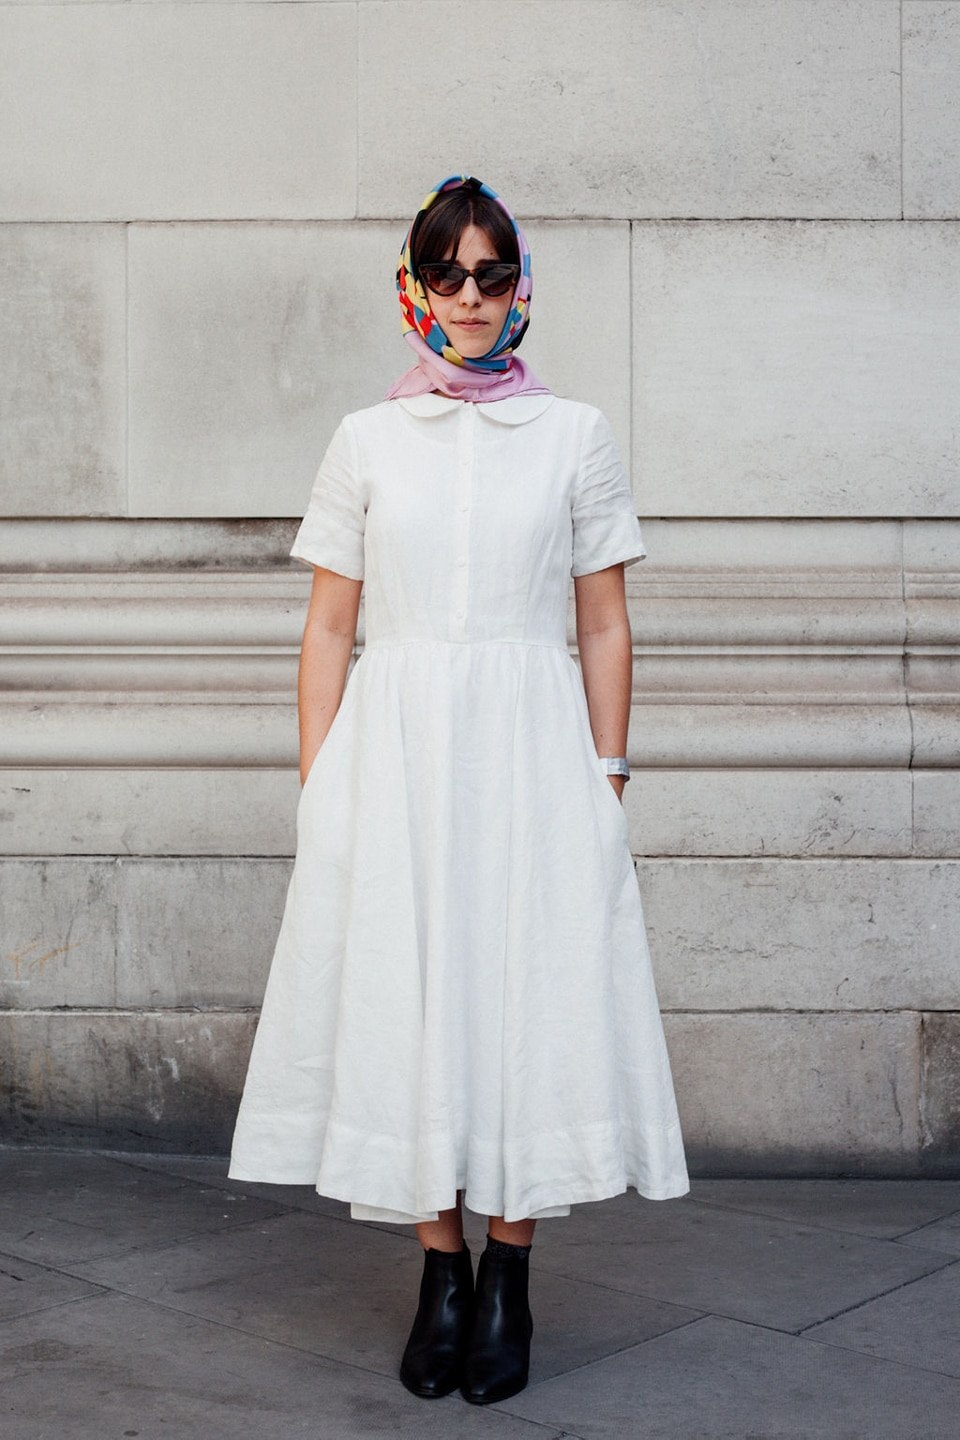 Besma wearing white dress with pink headscarf and sunglasses